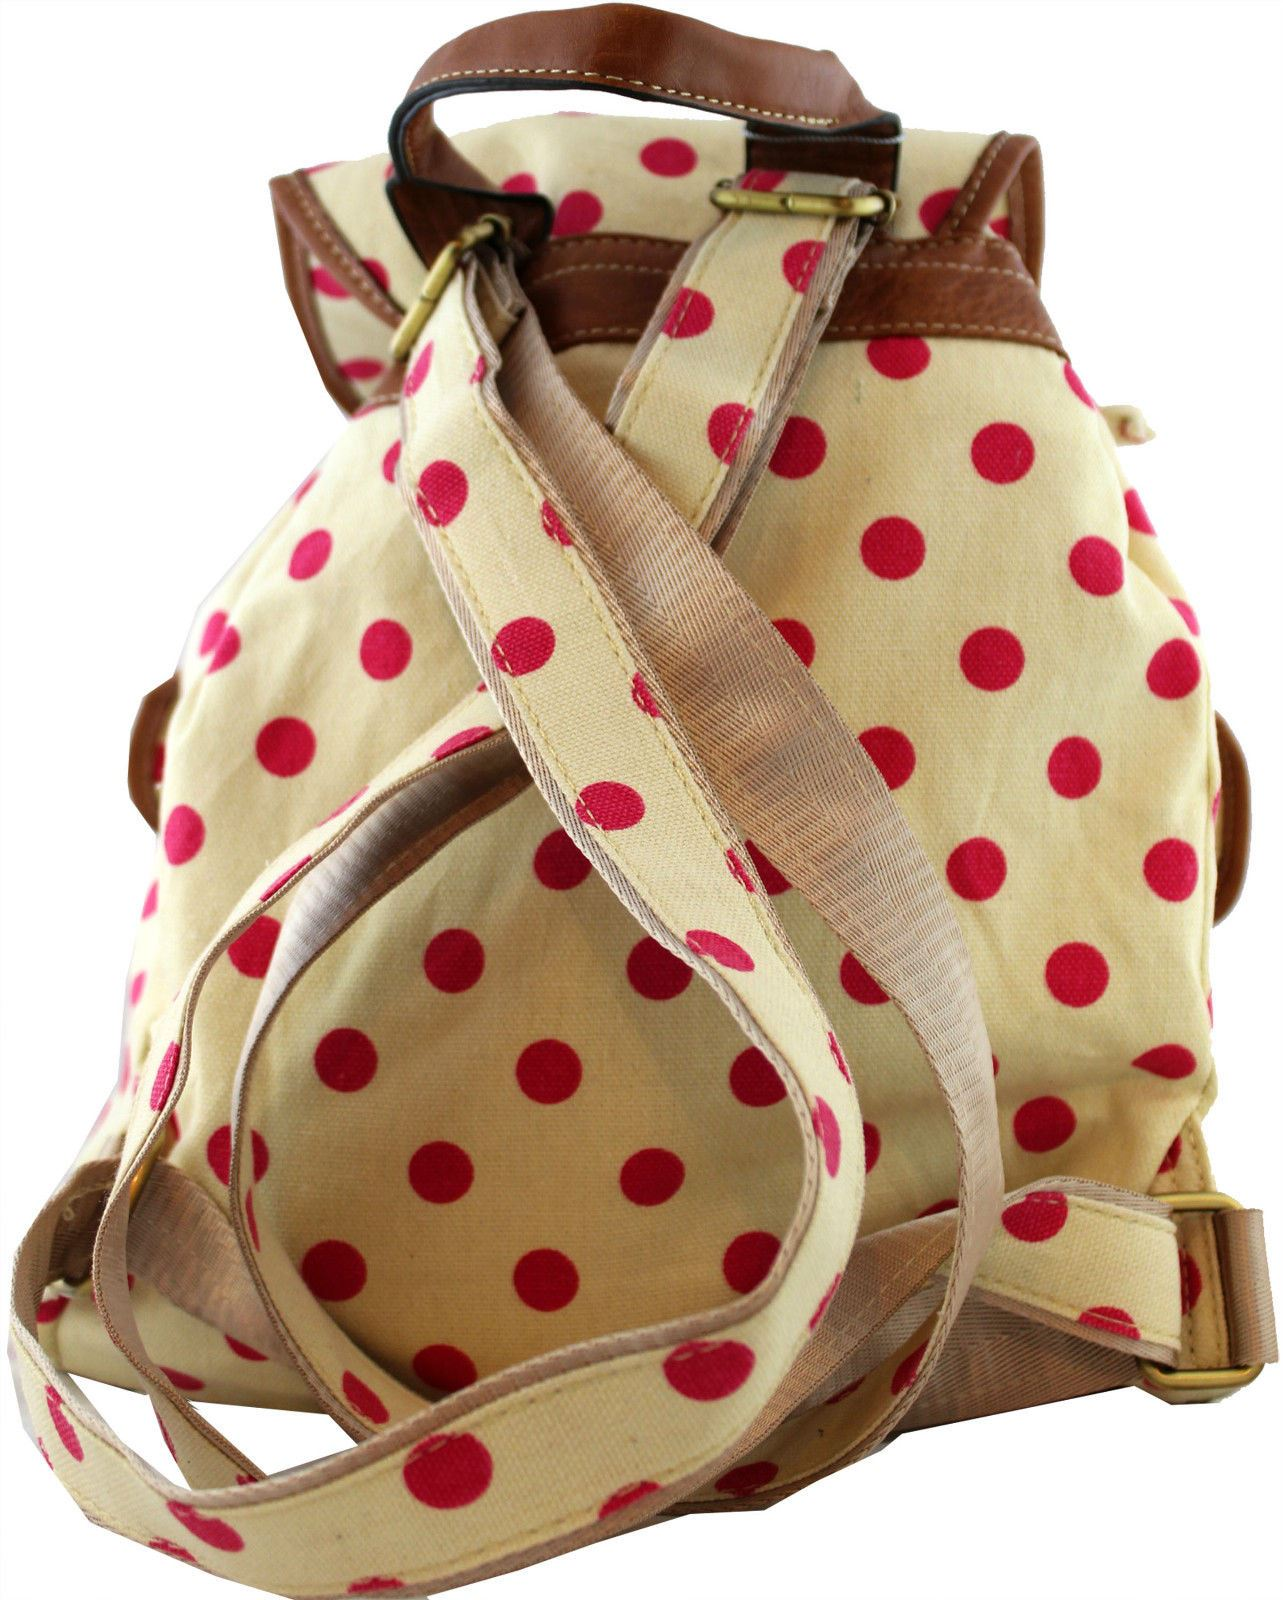 Wowlife Teen Girl's Vintage Cute Polka Dot Backpack School Book Moonwind Polka Dot 3pcs Kids Book Bag School Backpack Handbag Purse Girls Teen. by Moonwind. $ - $ $ 25 $ 31 99 Prime. FREE Shipping on eligible orders. Some colors are Prime eligible. out of 5 stars